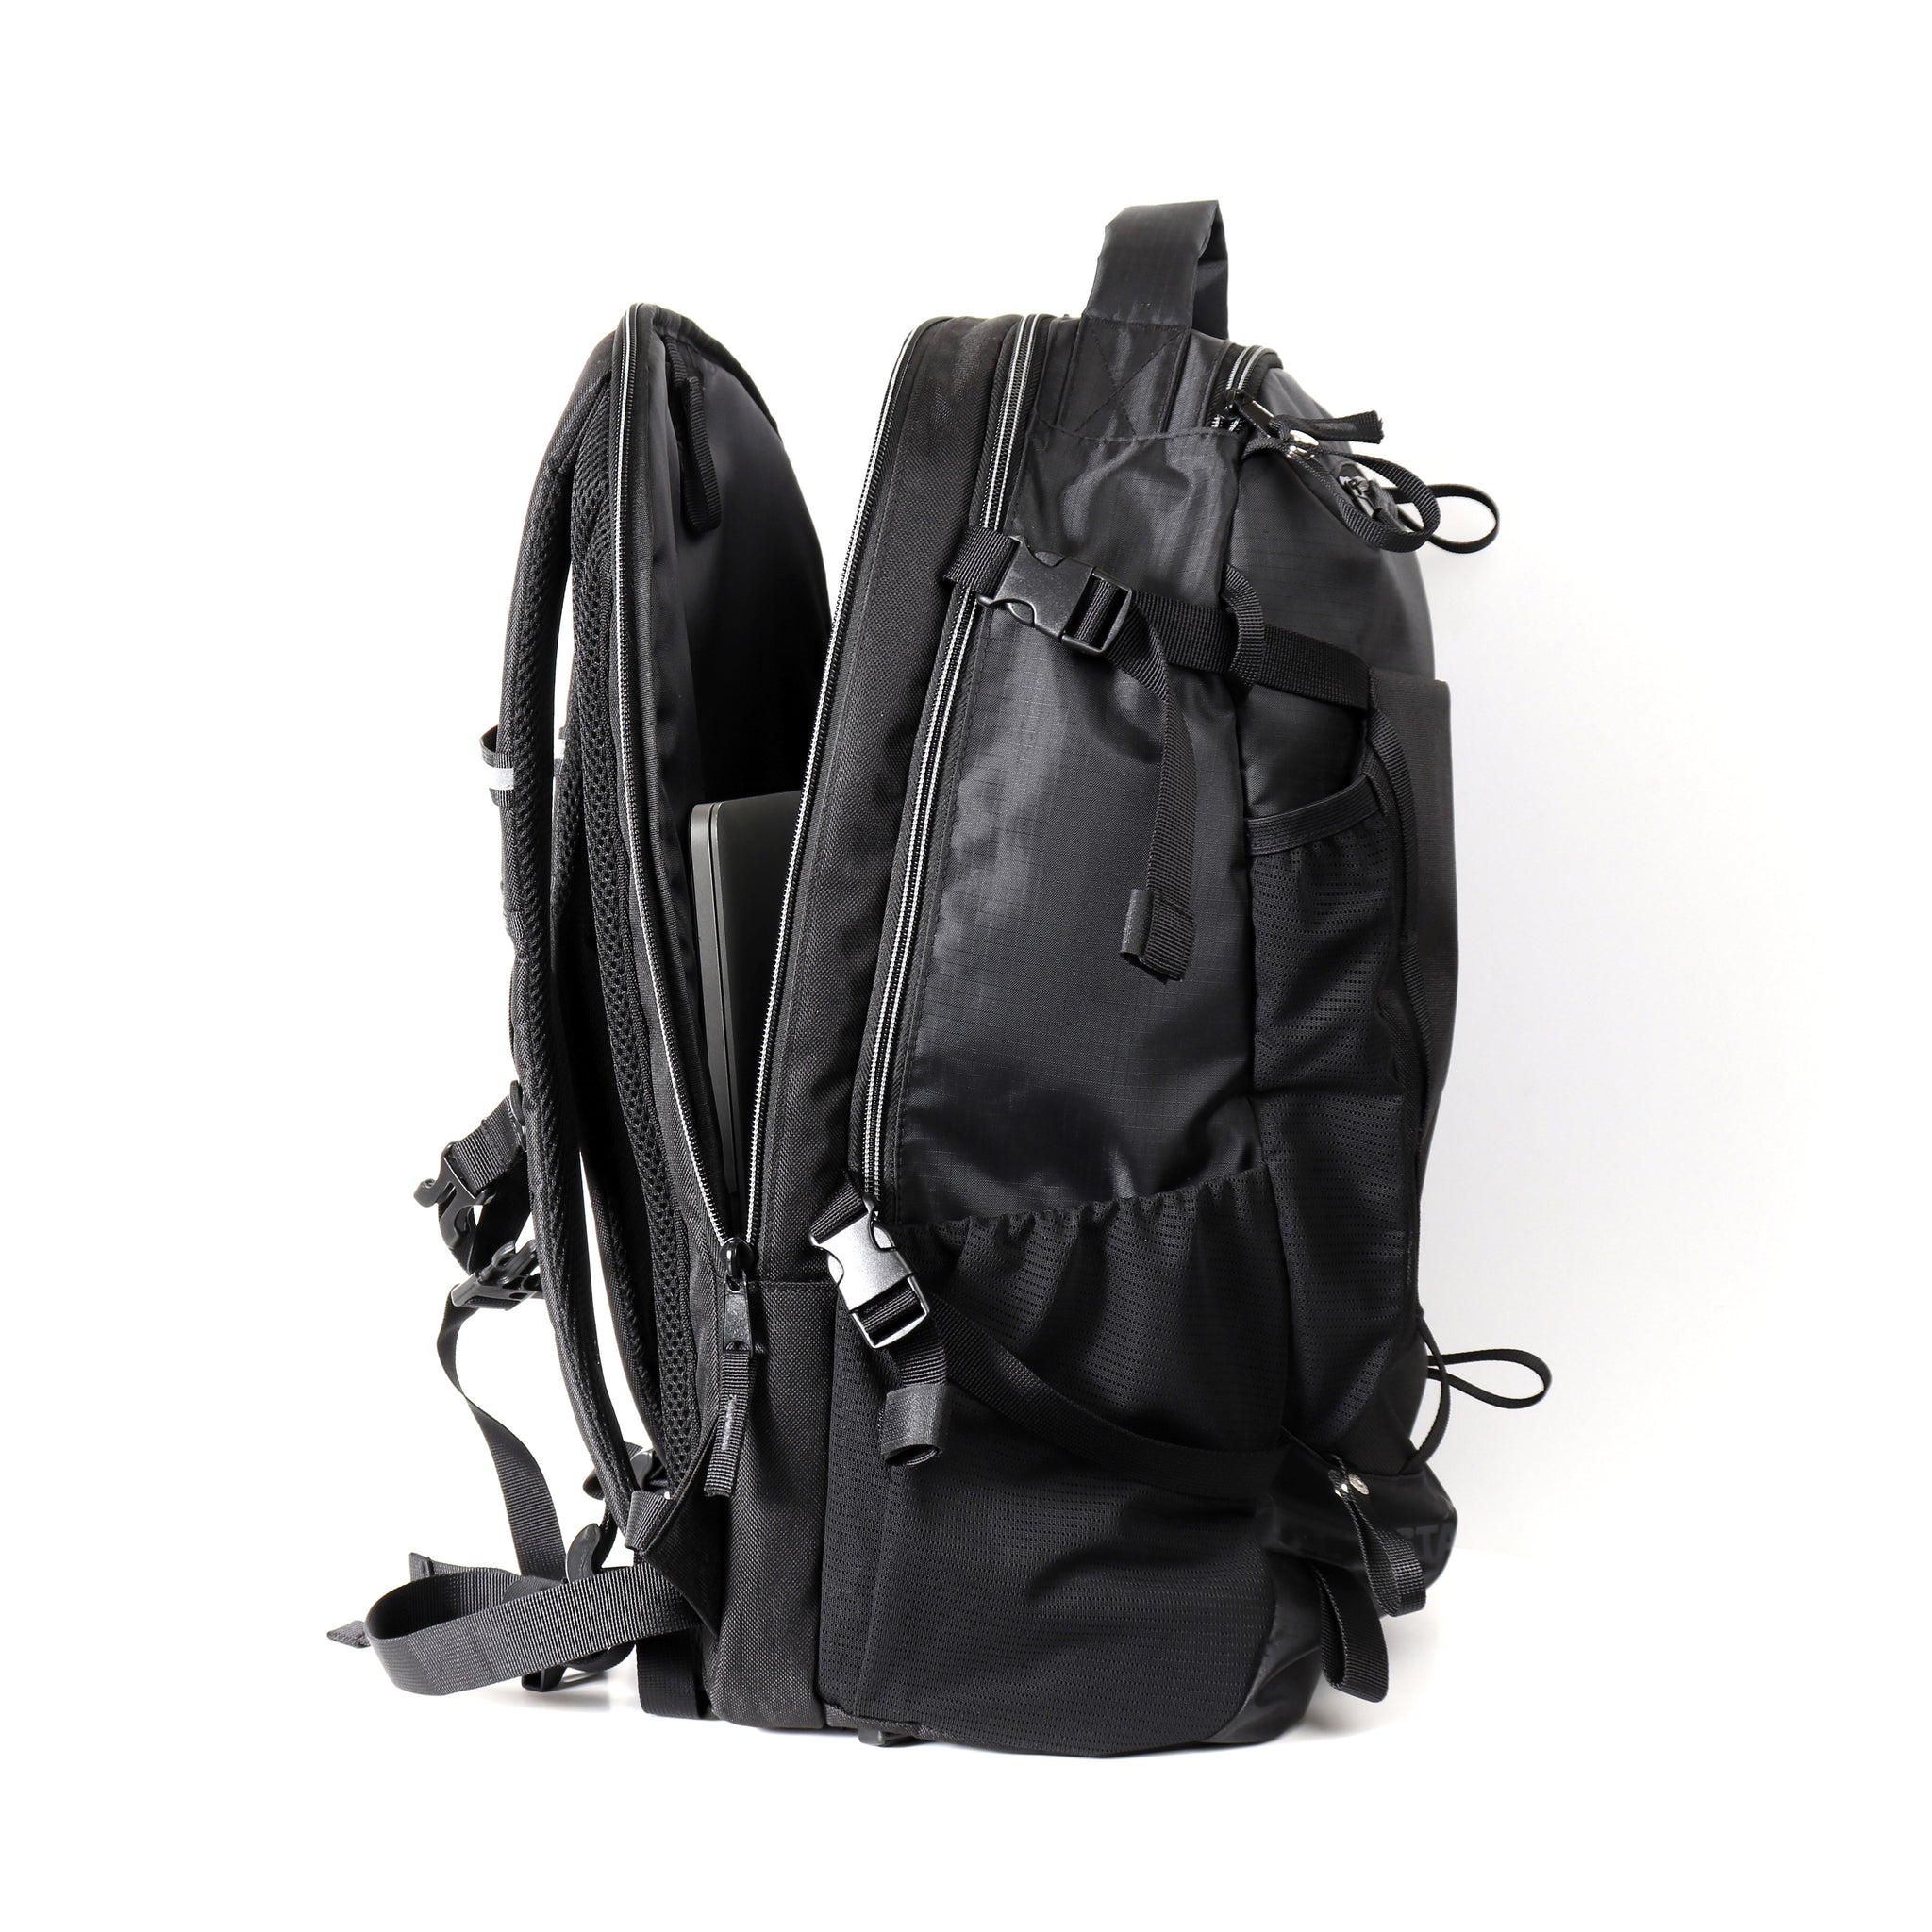 STAGE Multi Function Backpack